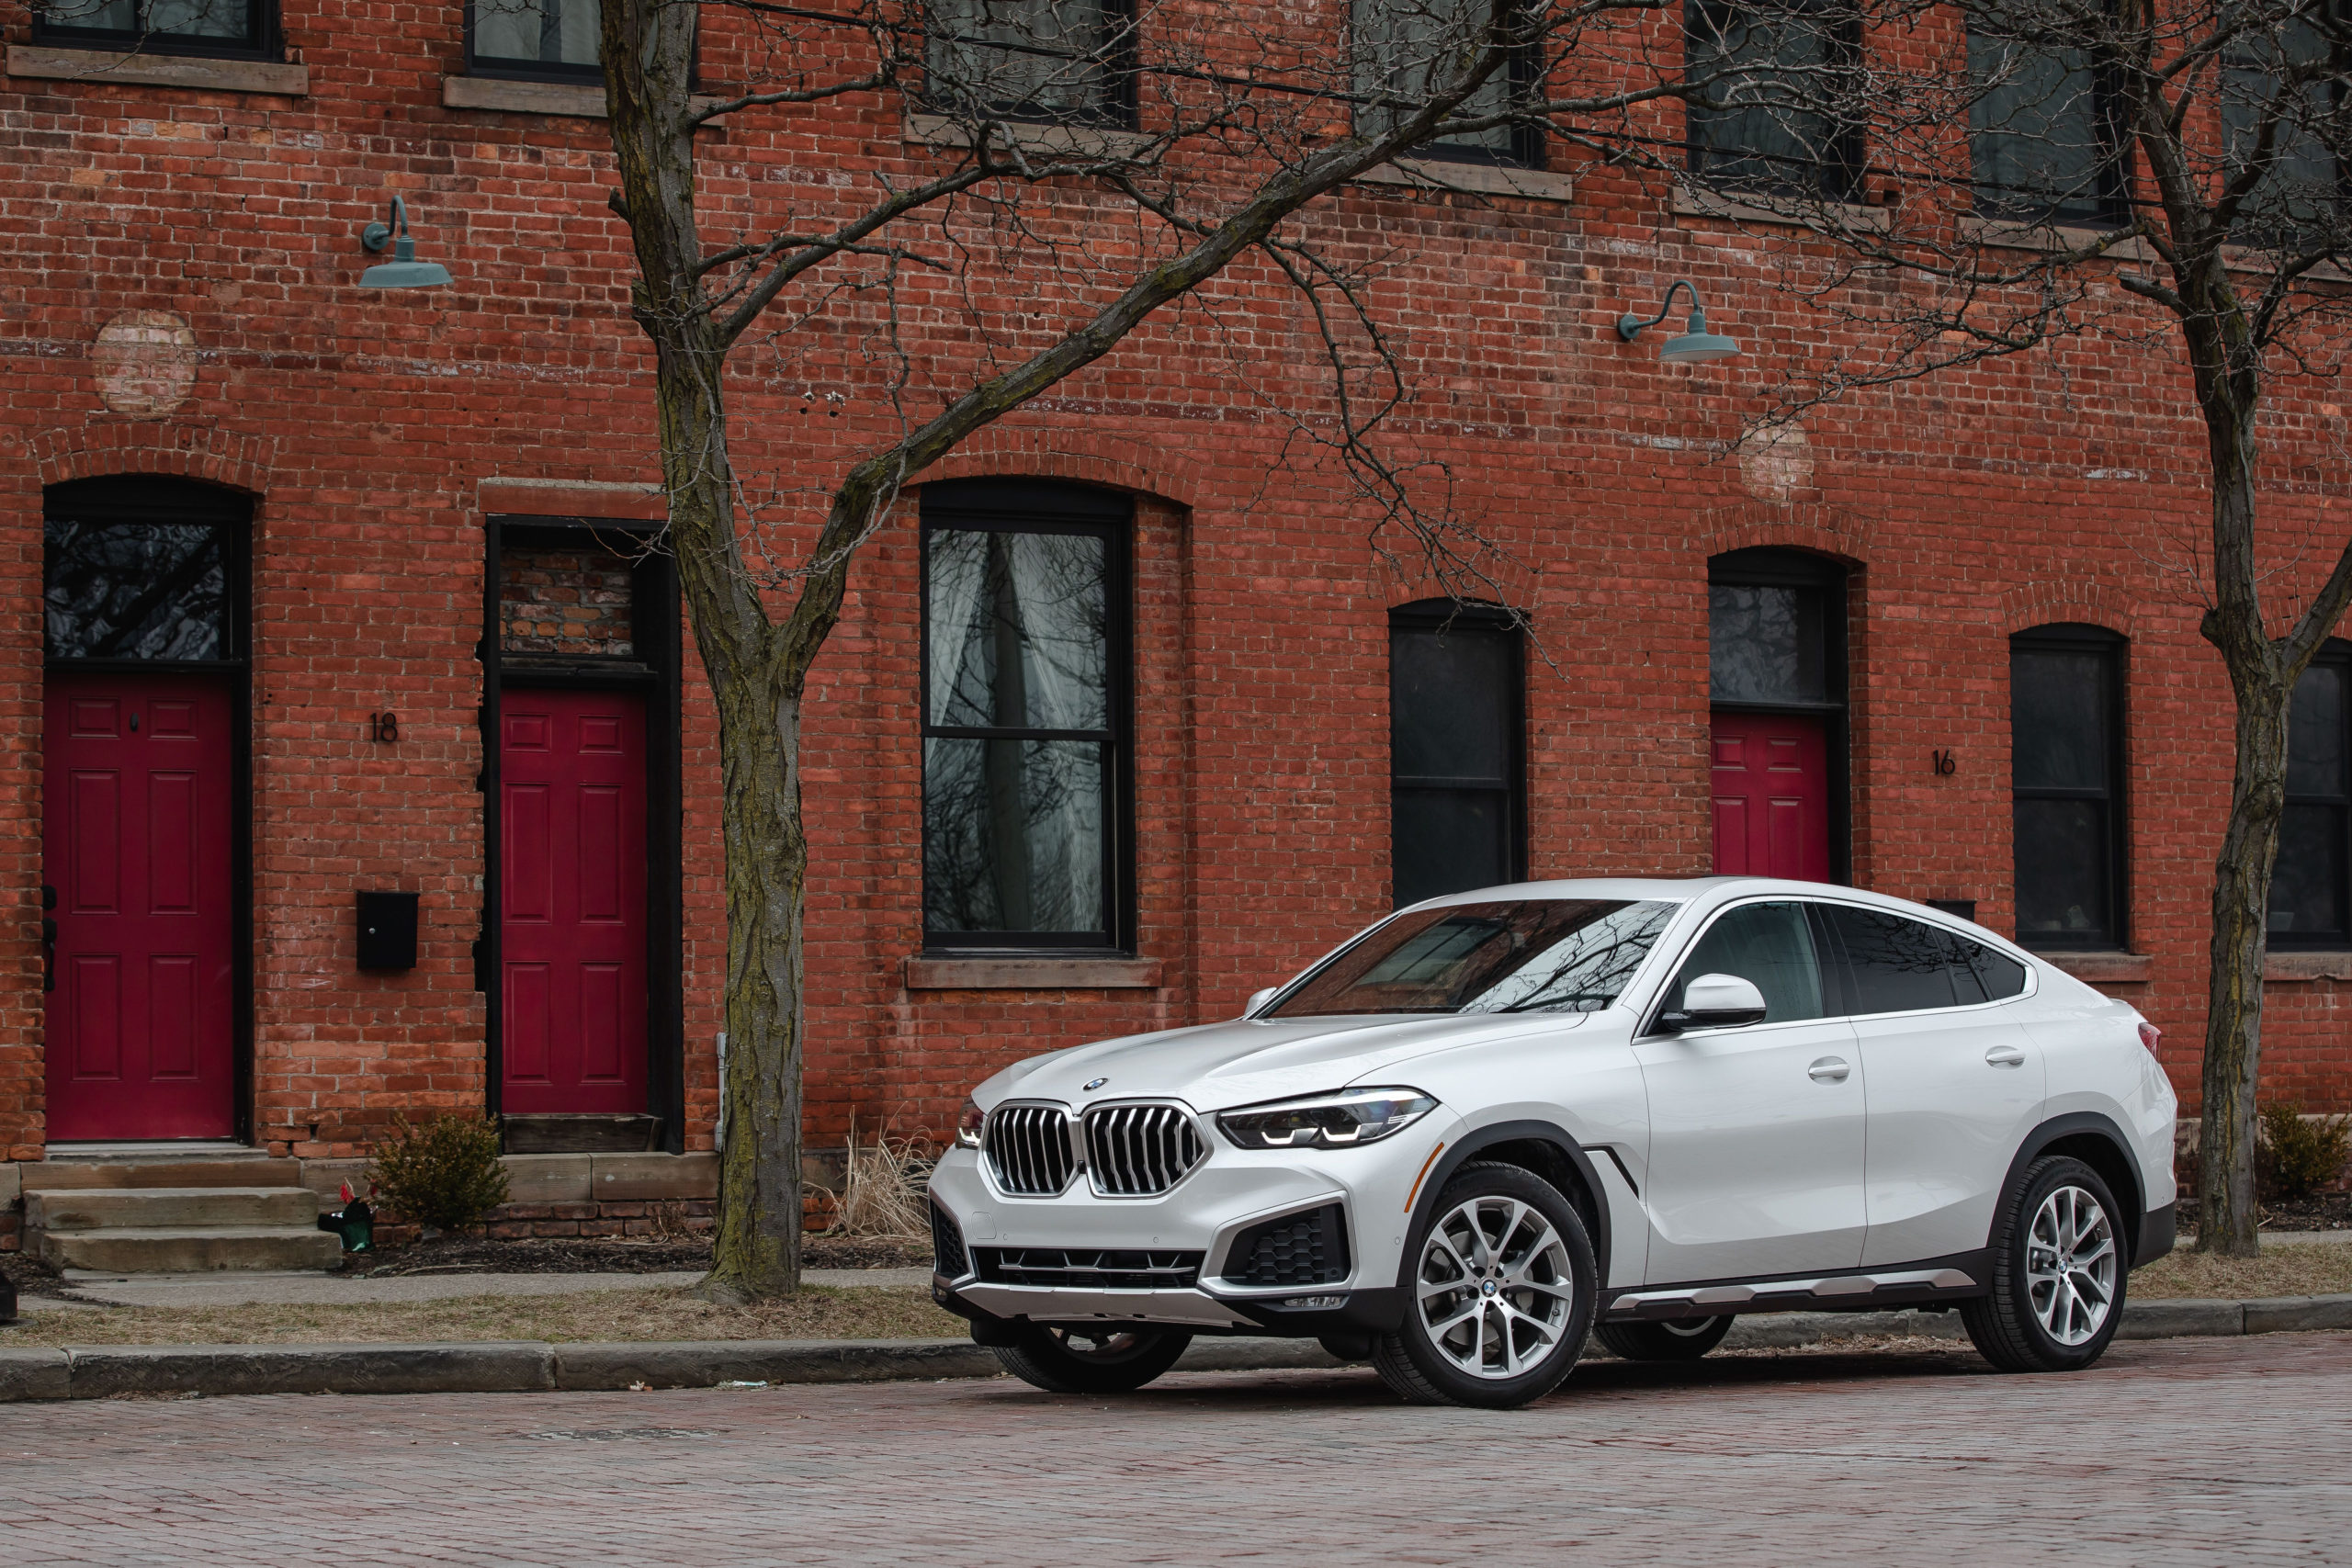 2020 BMW X6 Review, Pricing, and Specs